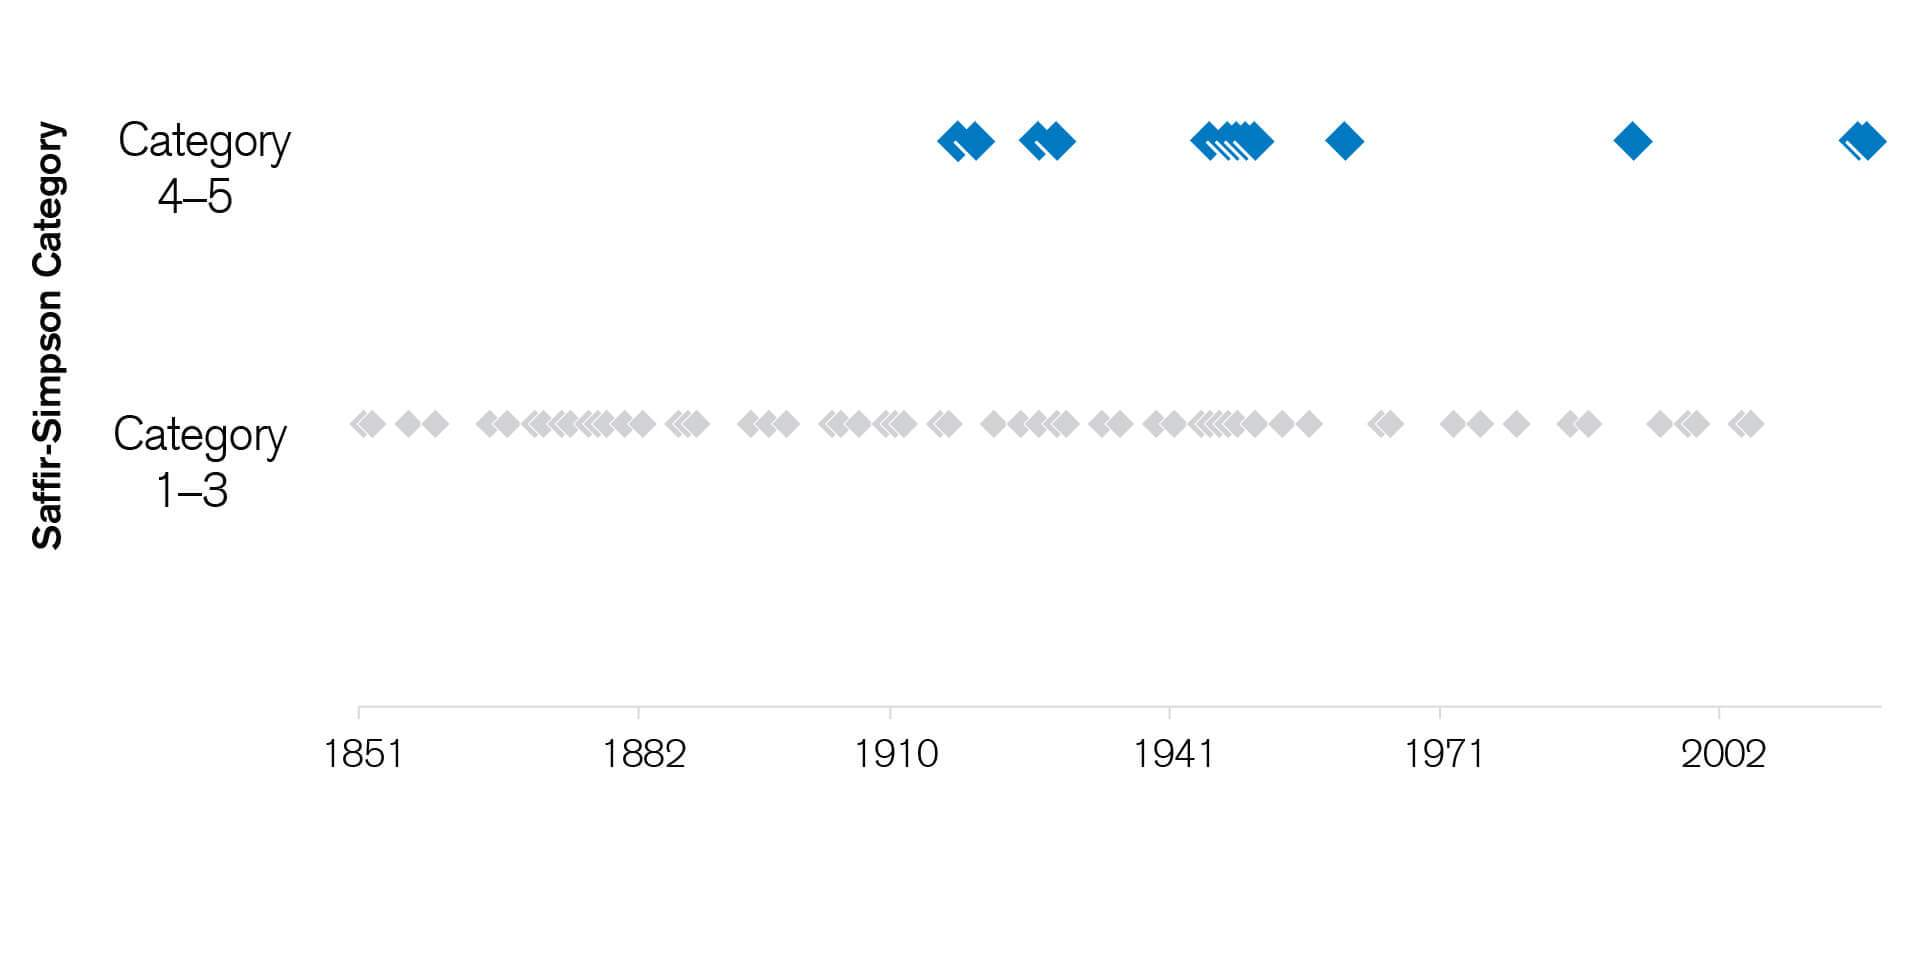 Since record-keeping began, Florida has experienced 13 very severe hurricanes measuring Category 4 or 5 at landfall.  This chart shows the hurricane landfalls in Florida from when record-keeping began in 1851 until 2018. The hurricanes are separated between categories 1–3 and 4–5. It illustrates the fact that, since record-keeping began, Florida has experienced 13 very severe hurricanes measuring Category 4 or 5 at landfall. The main point of this chart is to display perception versus reality in the sense that people today assume that the hurricane frequency has increased significantly and that they can expect years like 2017 and 2018 to repeat every year; however long term statistics do not show a trend. In fact, before 2017, hurricane activity was remarkably low along Florida's coast, with 11 consecutive years of no landfall – the longest such period on record.